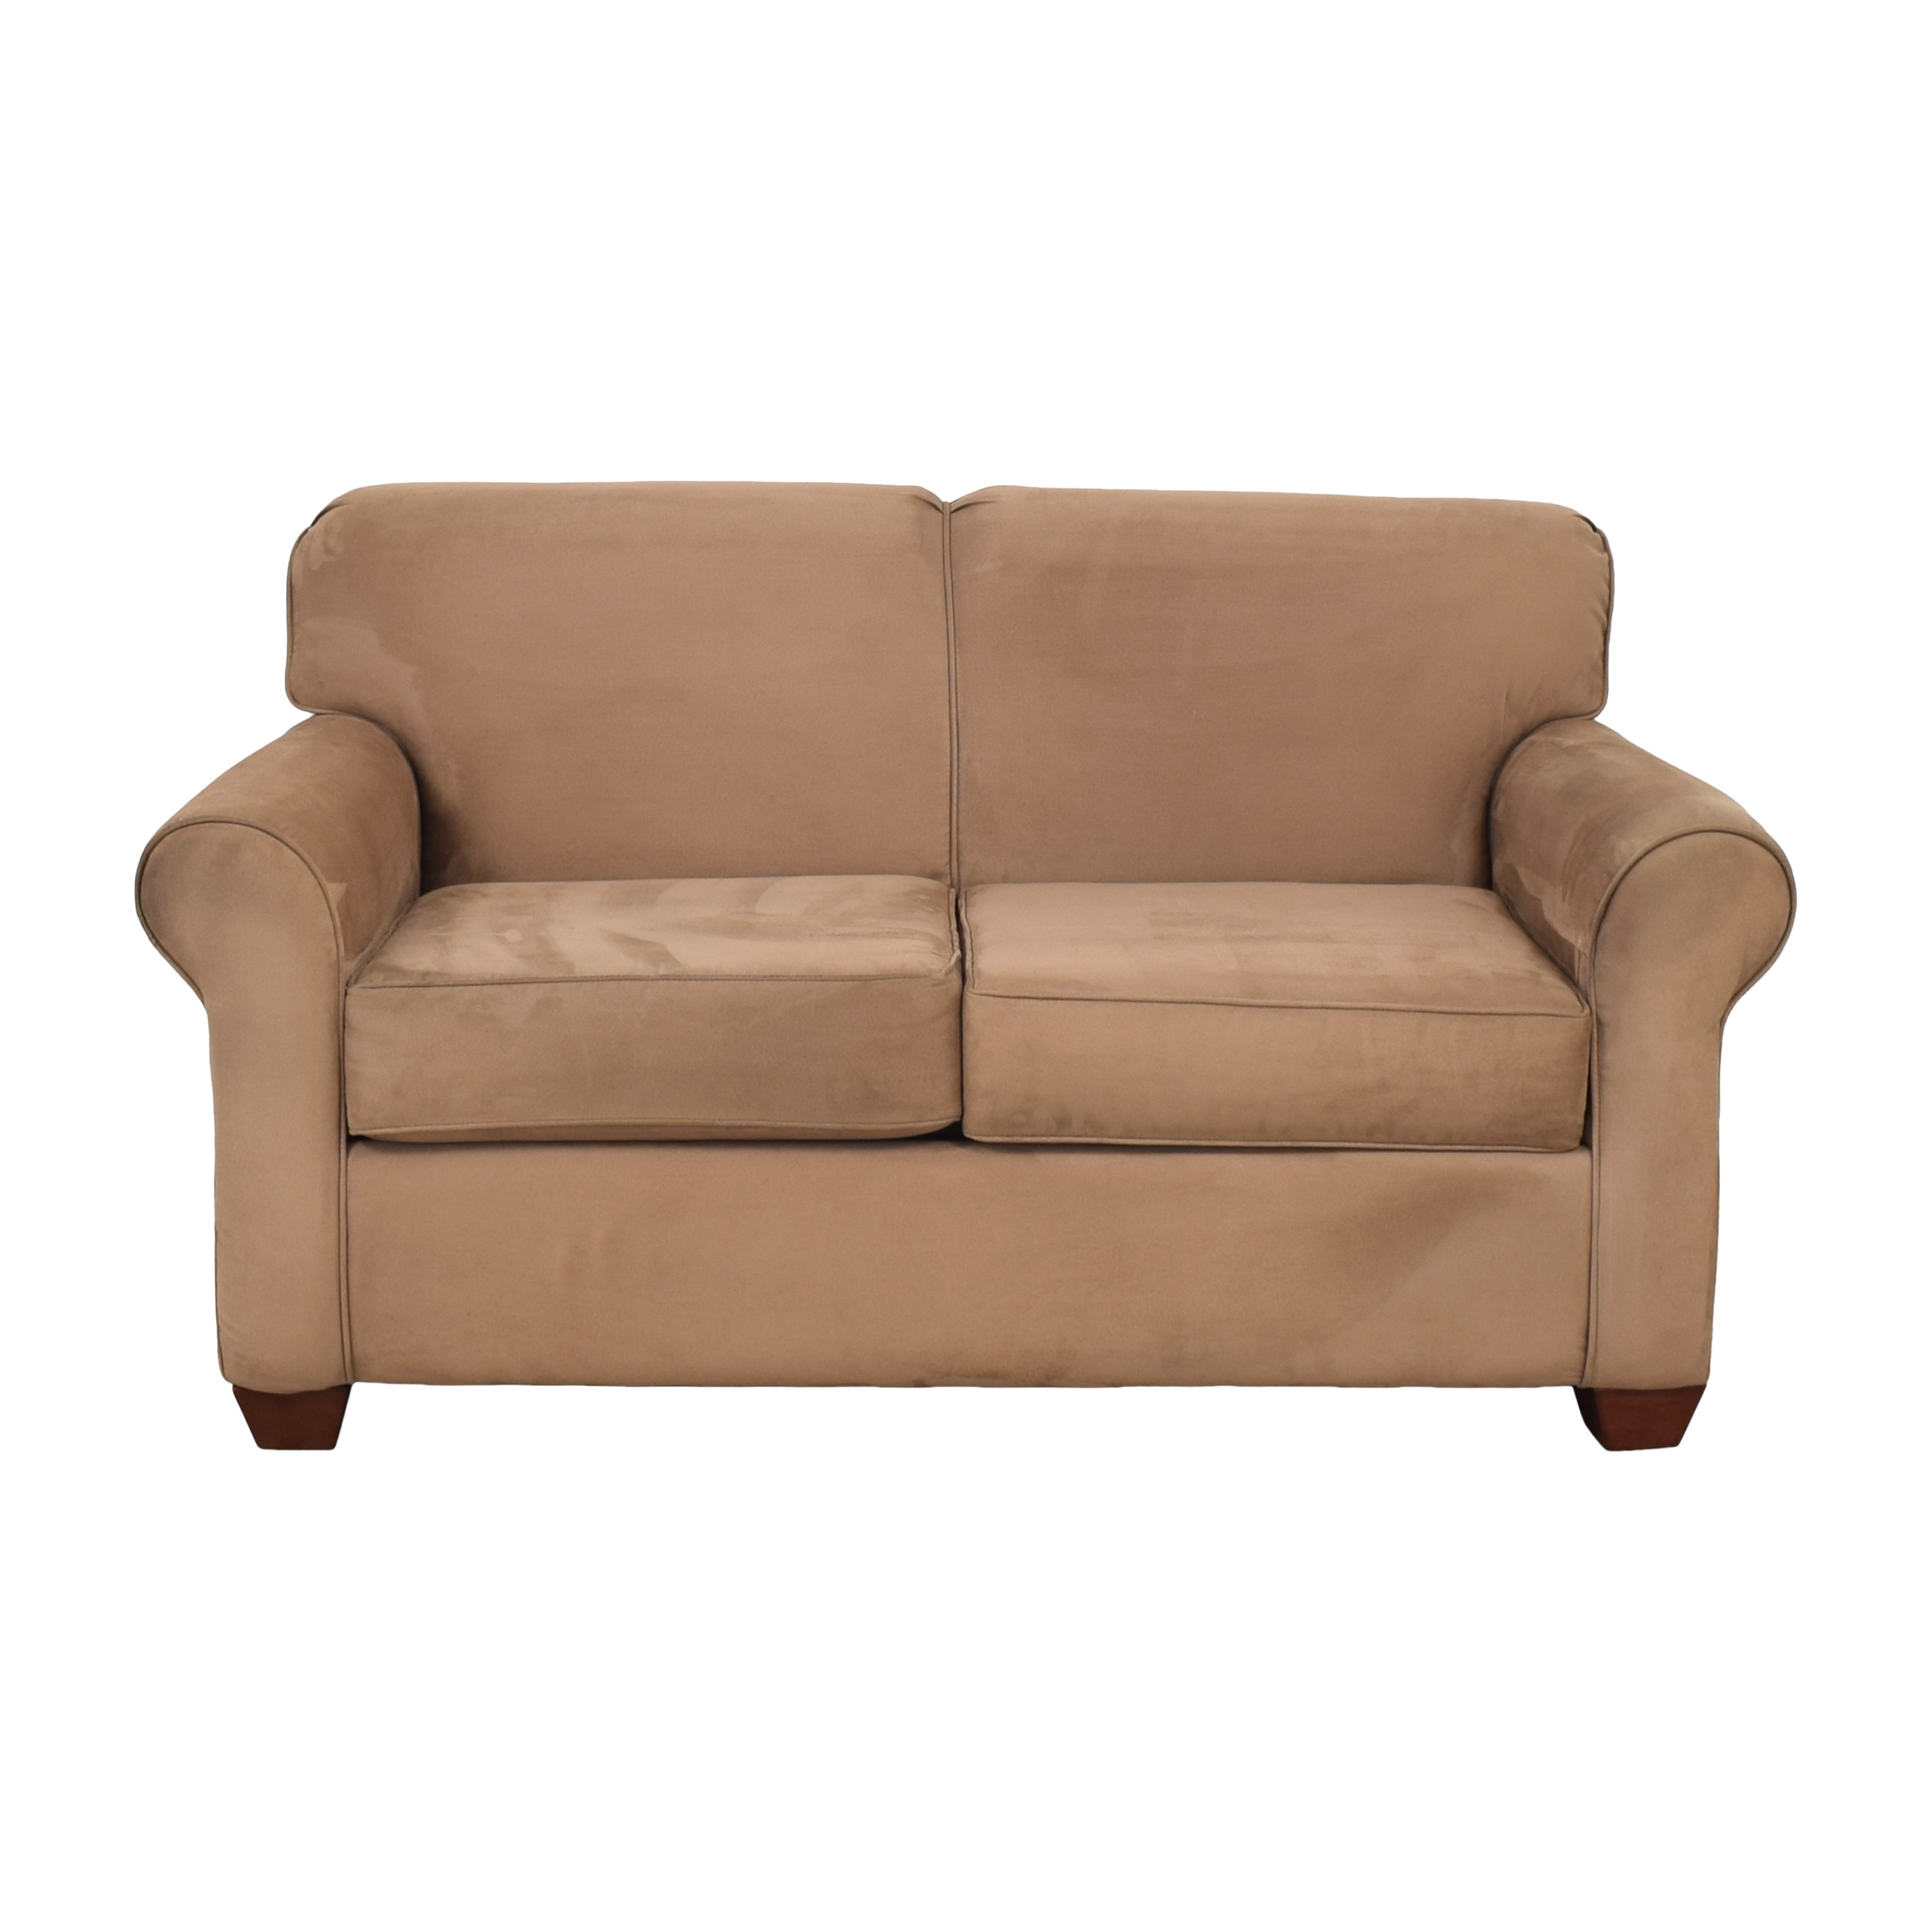 Klaussner Klaussner Two Cushion Loveseat beige